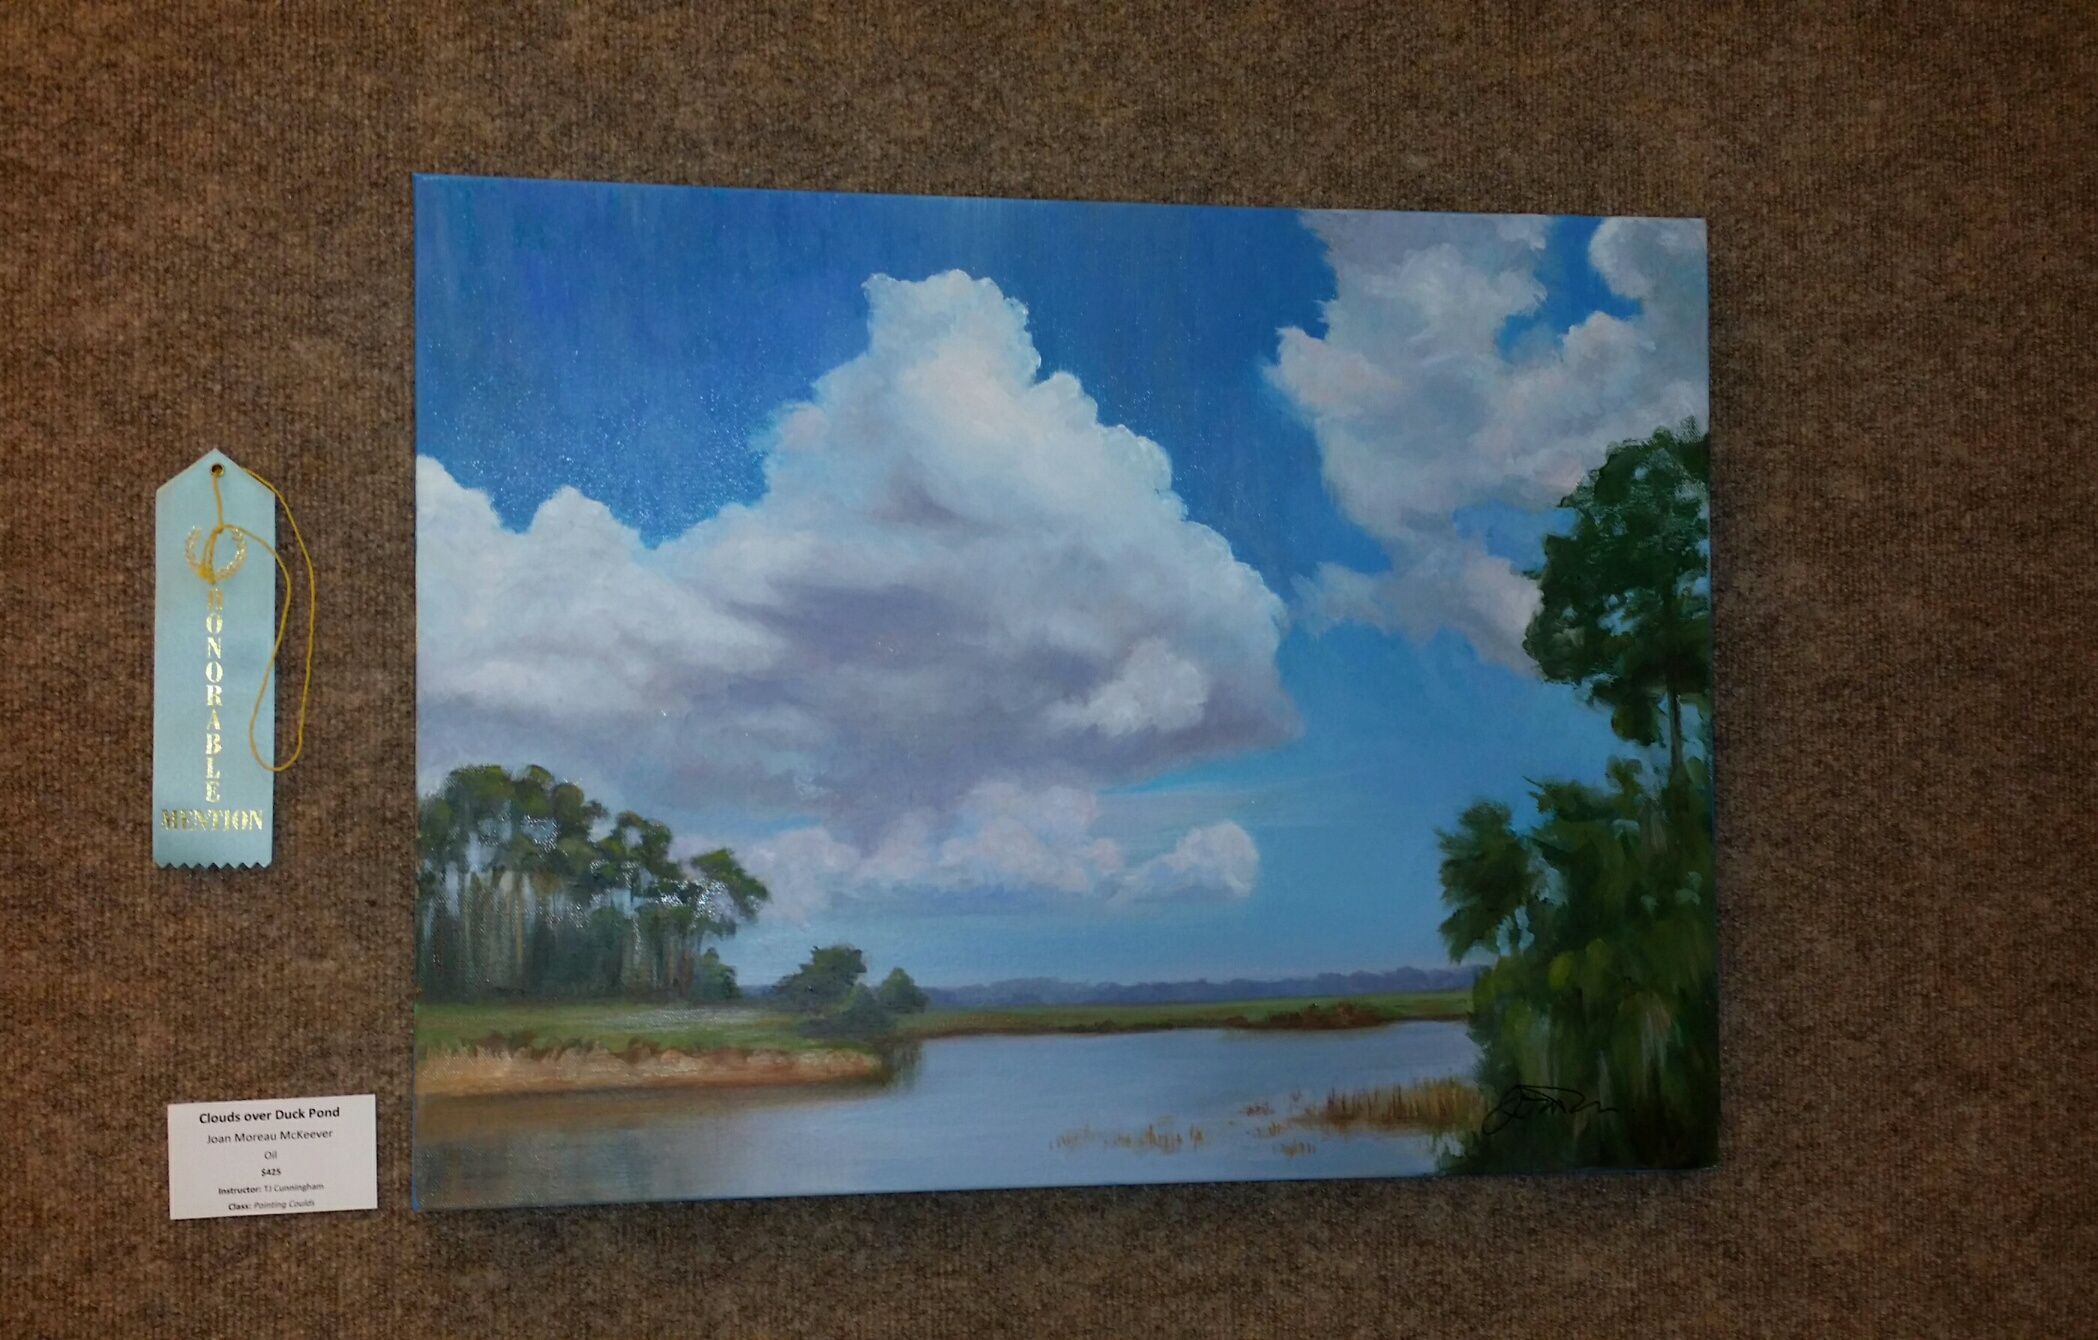 CLOUDS OVER DUCK POND